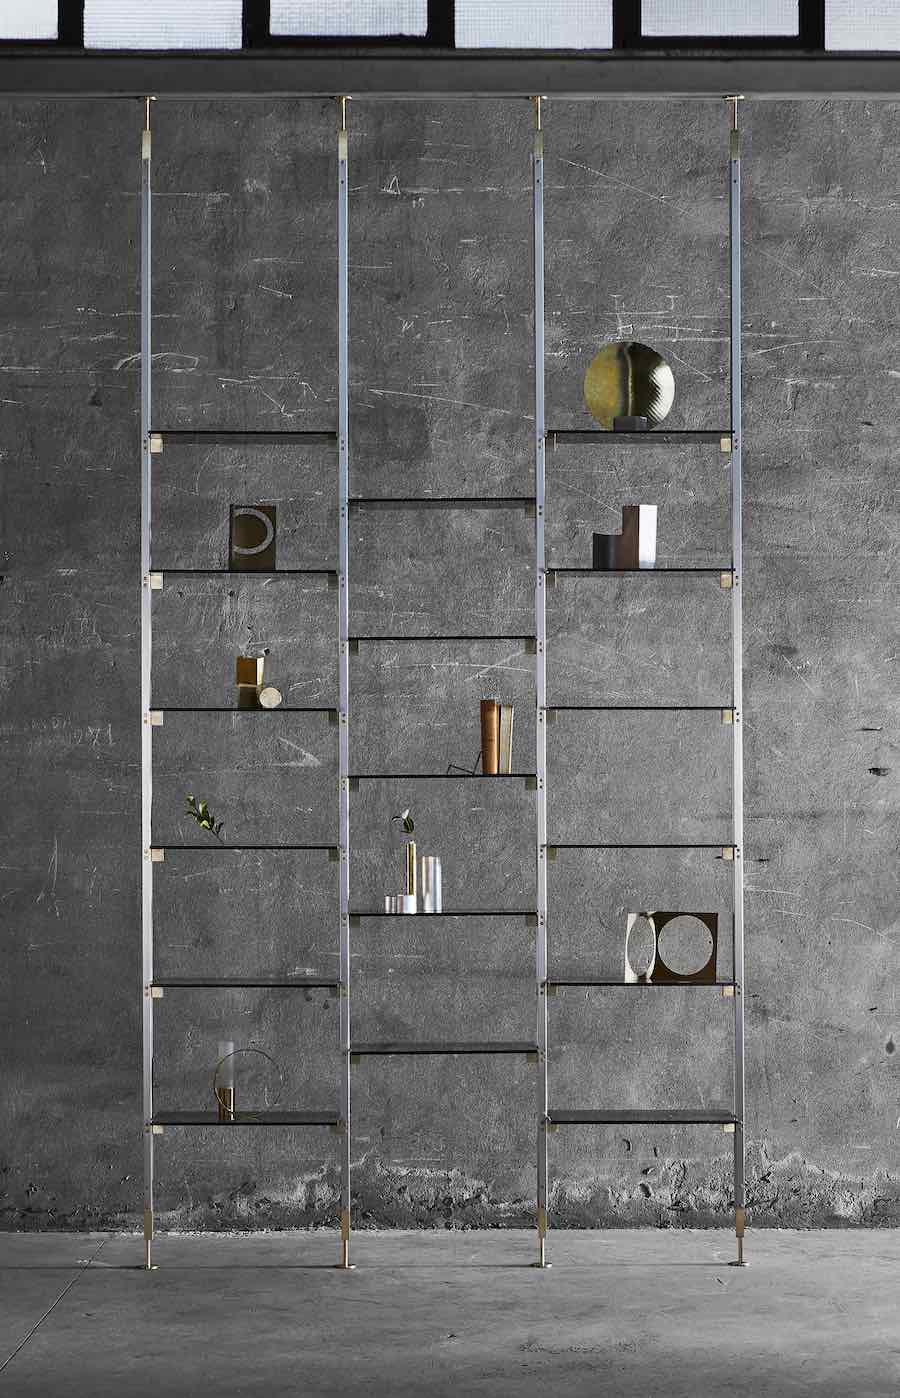 Handicrafts collection. Marianne shelving system by Federica Biasi - Photo by Matteo Imbriani - Courtesy of Mingardo.